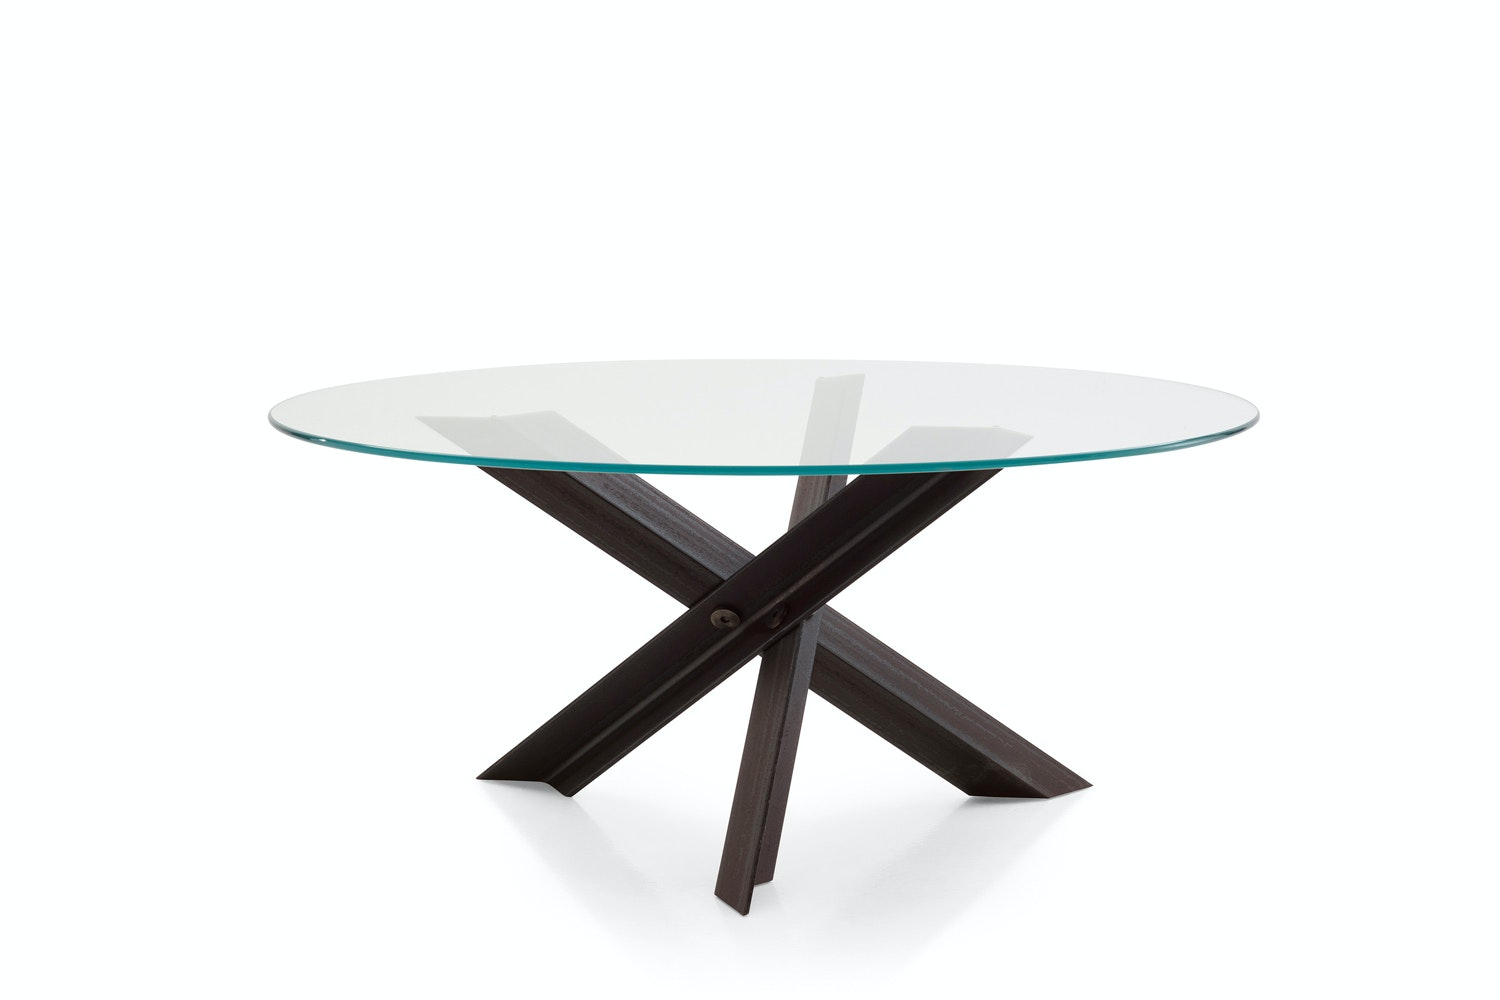 Bolt Table by Mario Bellini for B&B Italia